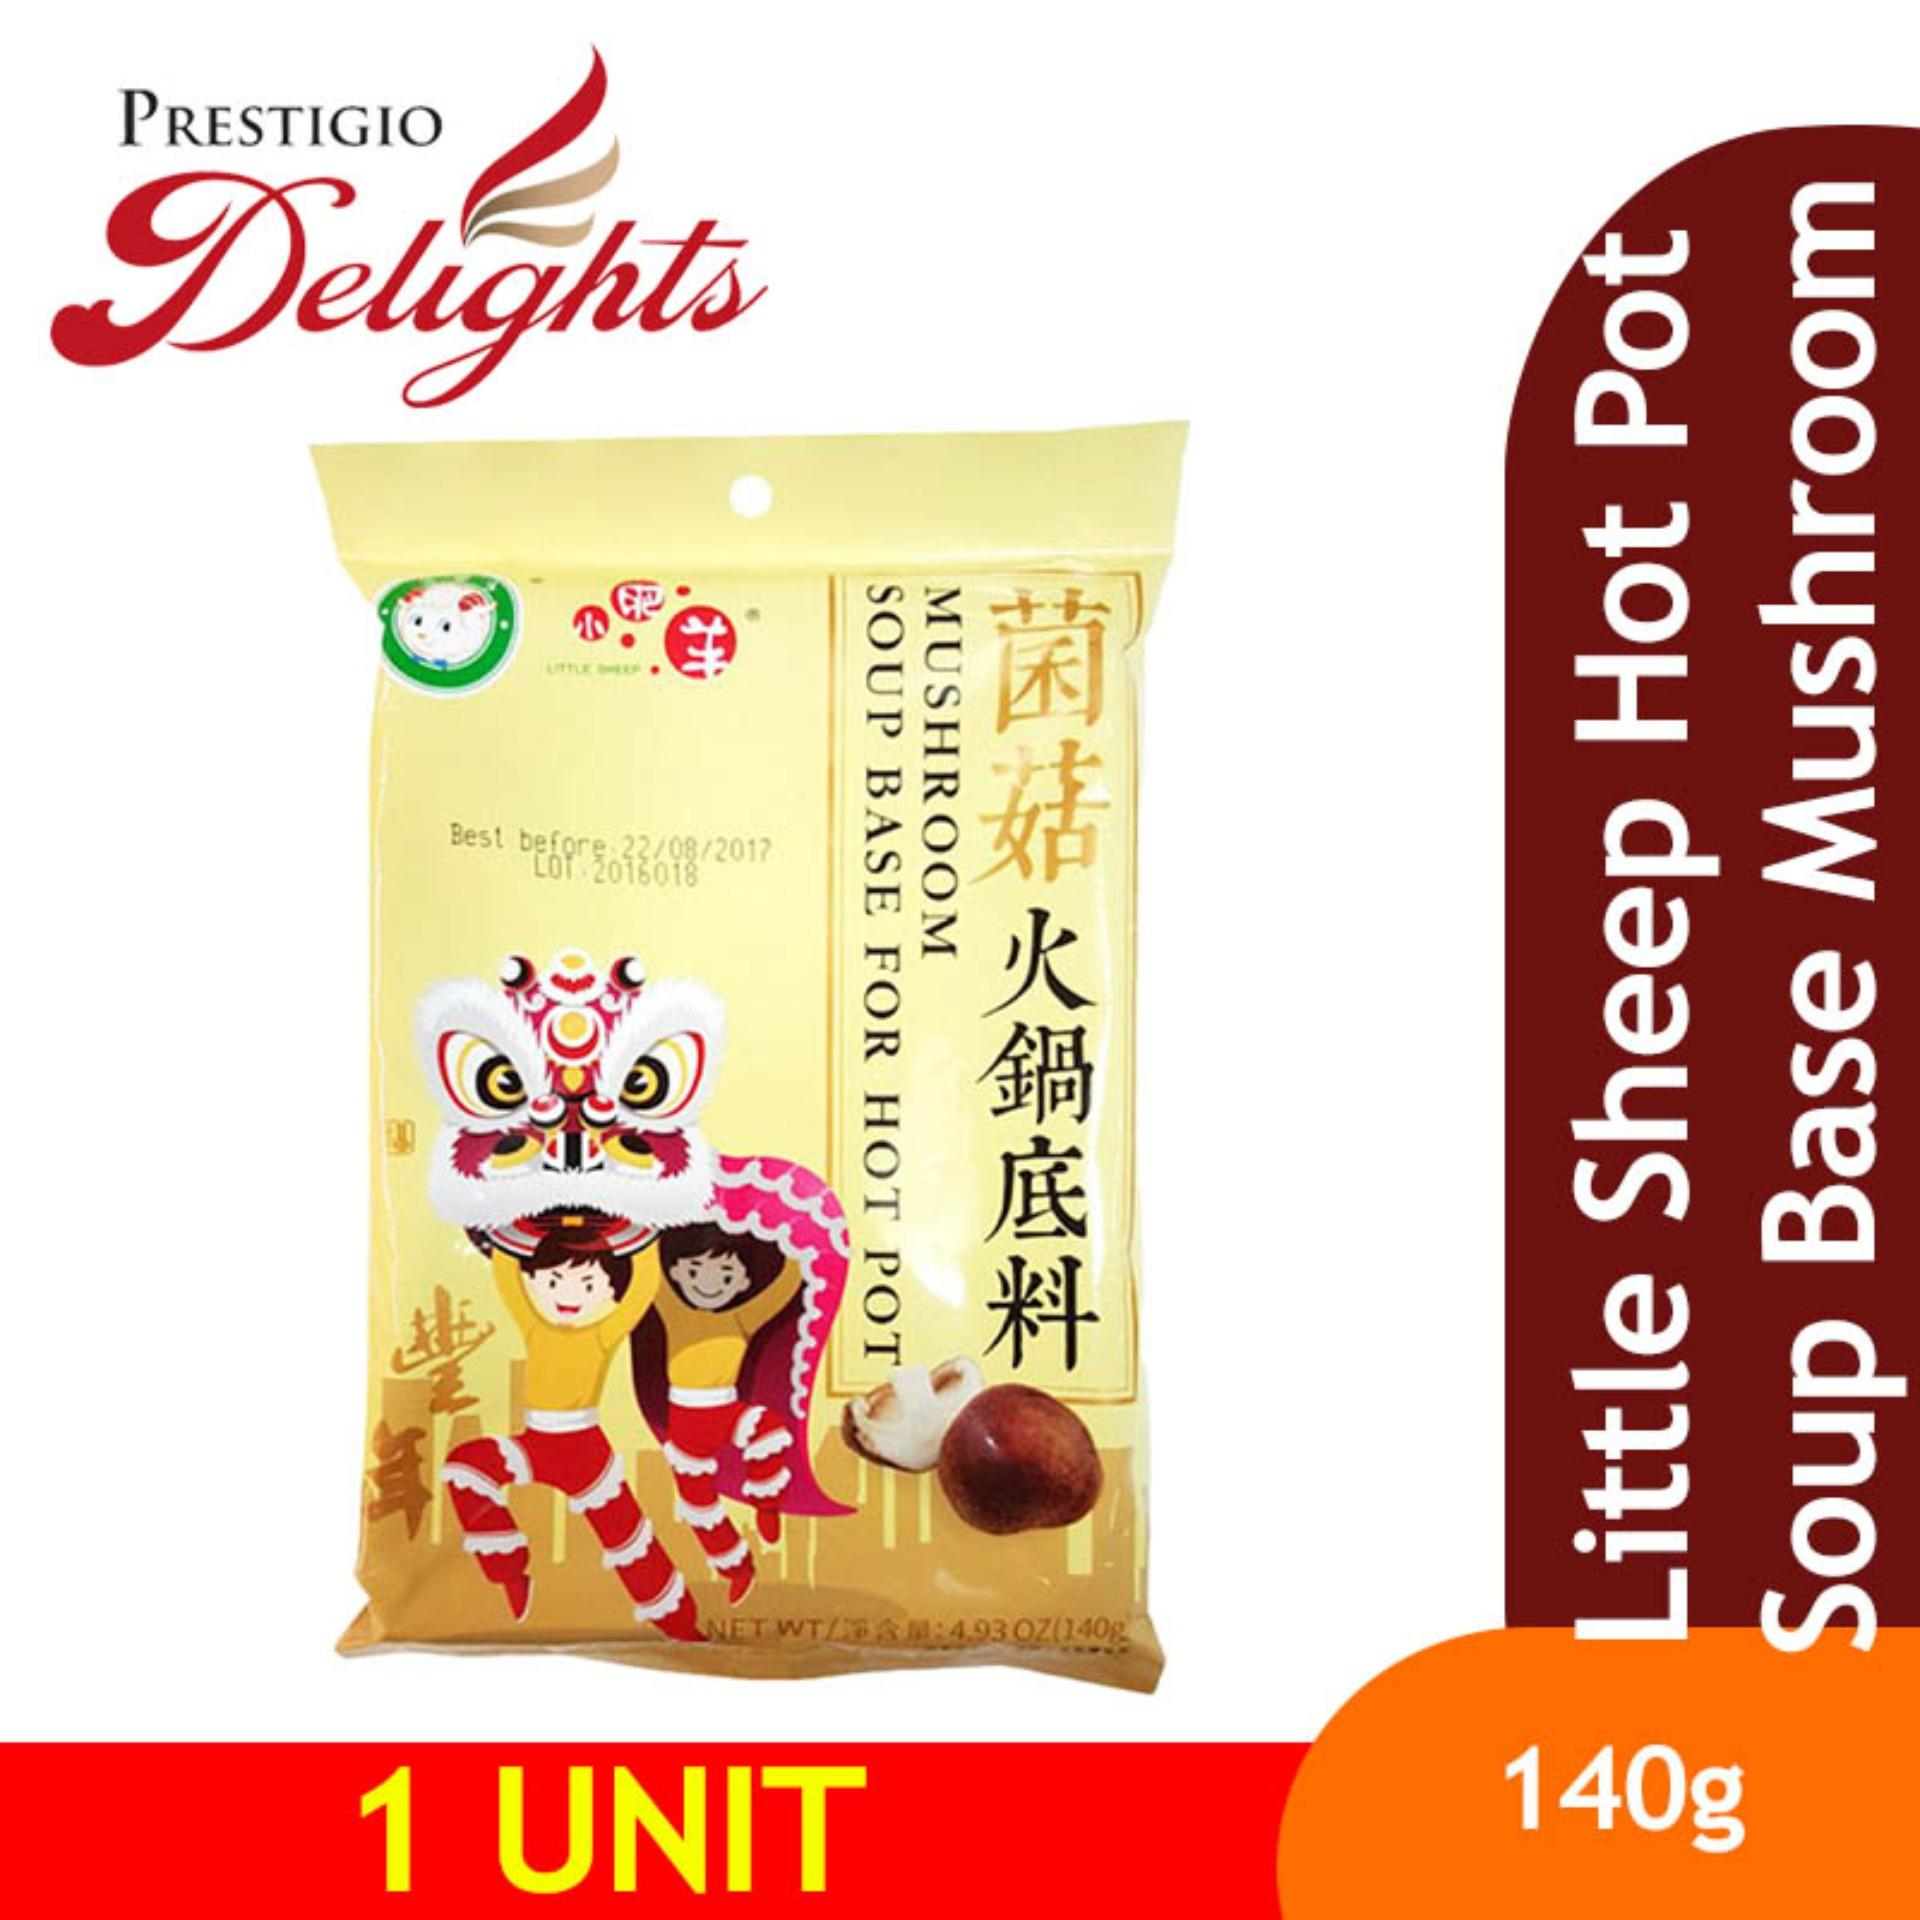 Little Sheep Hot Pot Soup Base Mushroom 140g By Prestigio Delights.